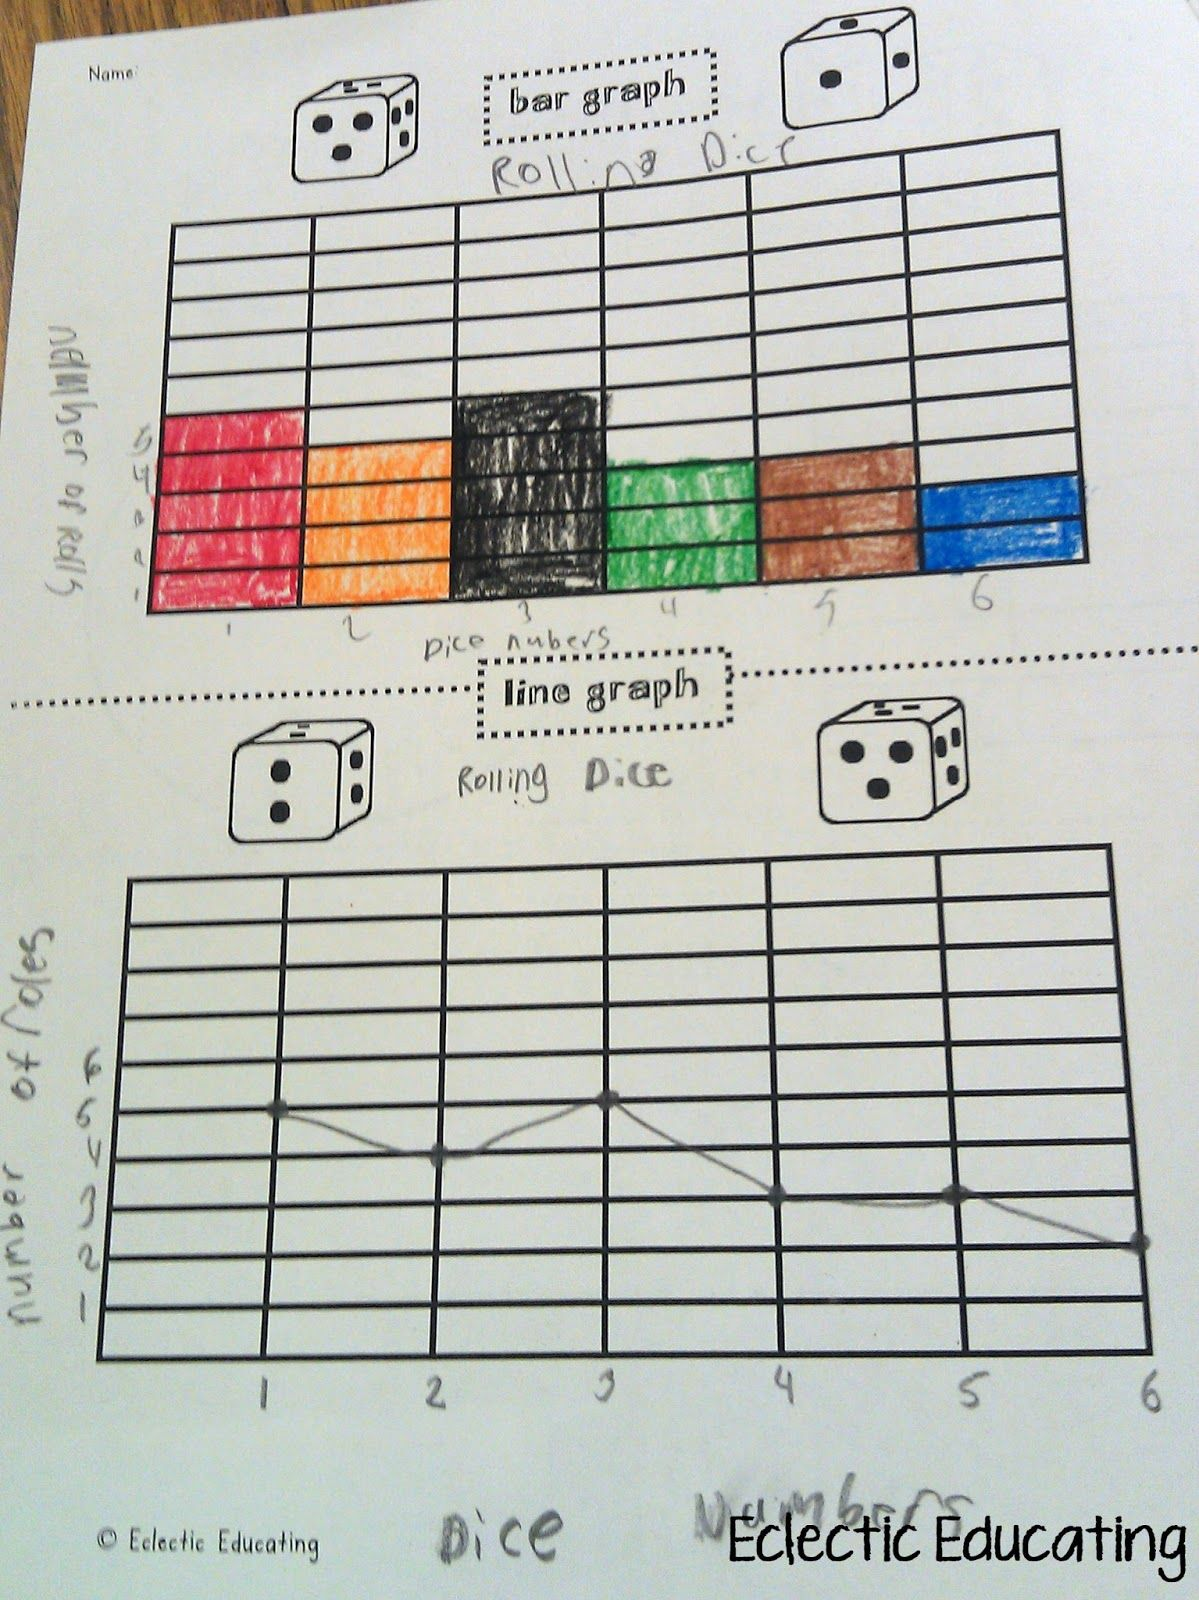 Eclectic Educating Graphing With Dice Mean Median Mode